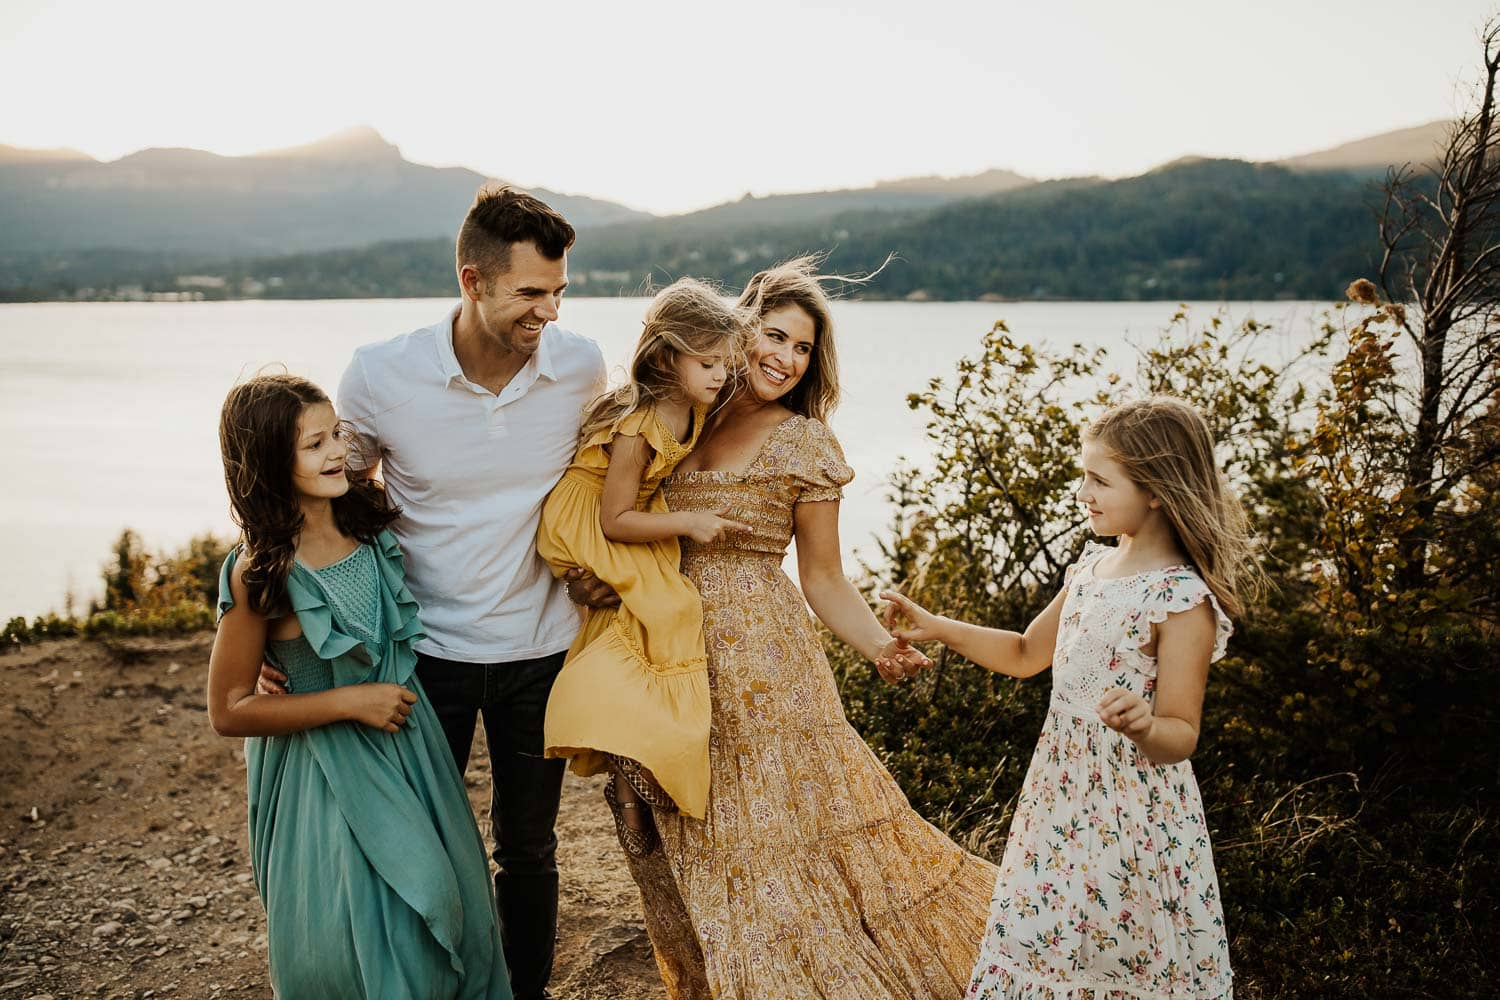 Family photos with great outfits - dresses from Joyfolie and Free People